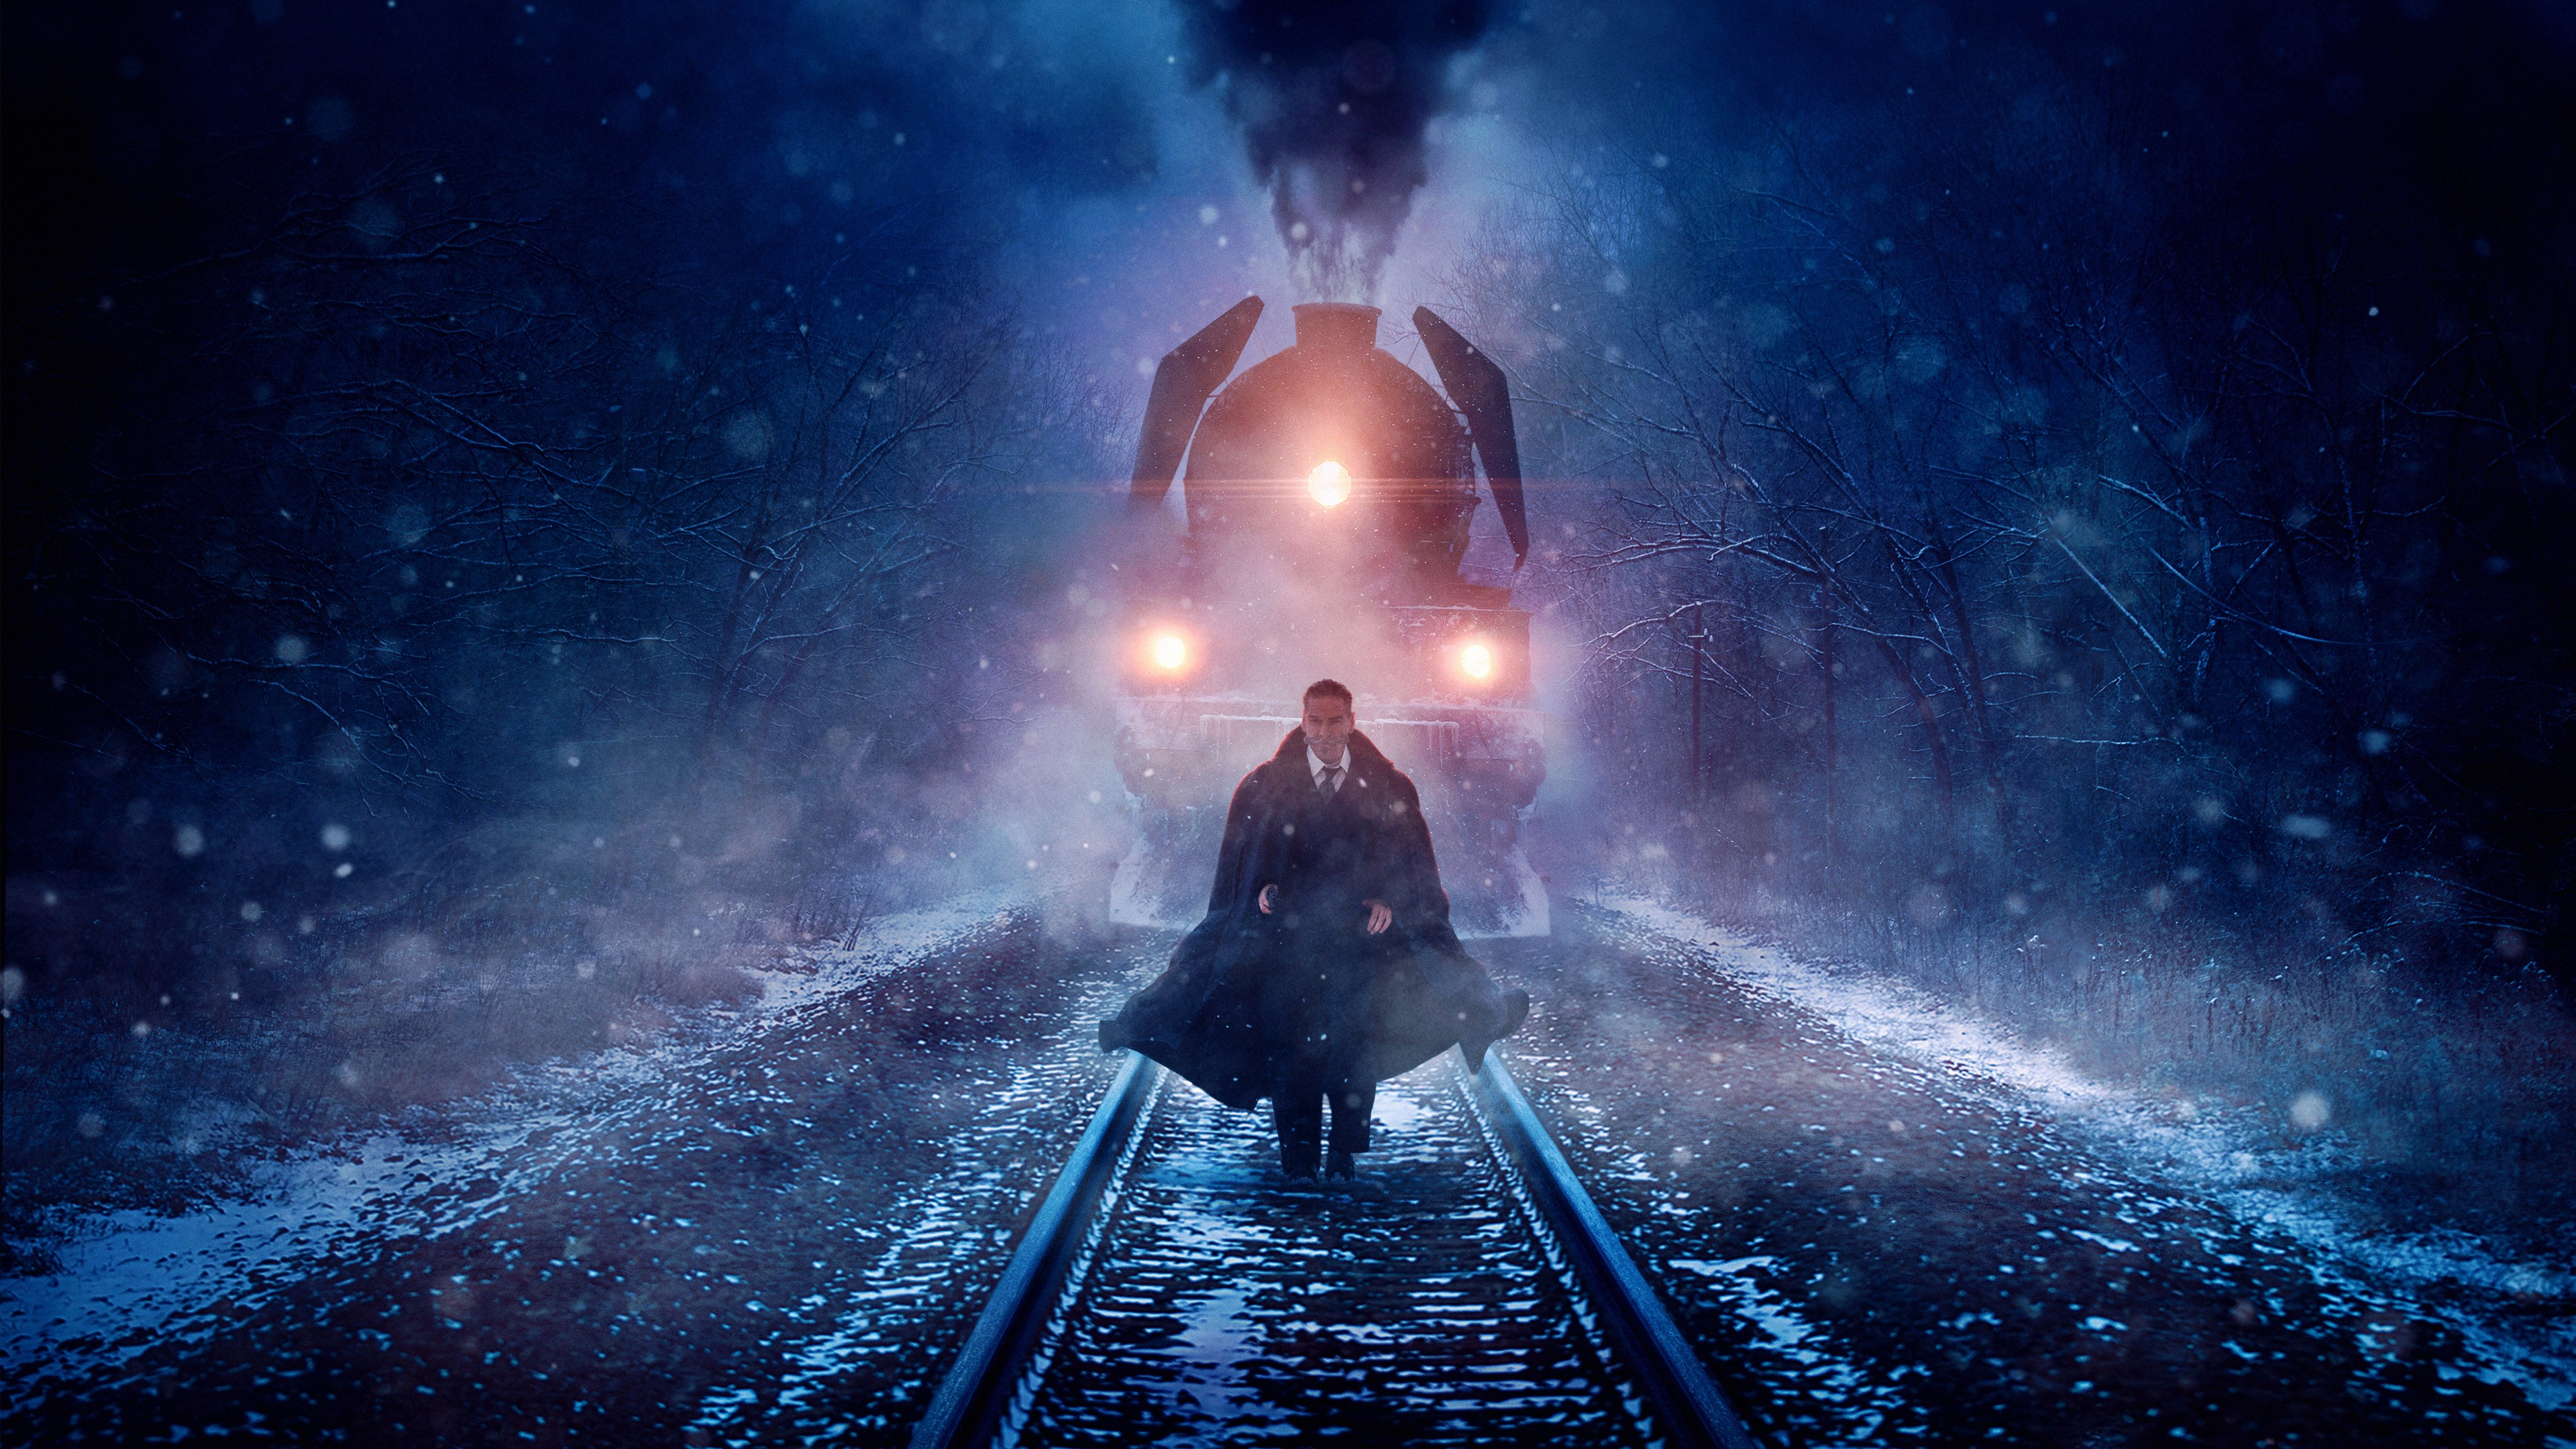 https://www.cinemayek.com/wp-content/uploads/2018/03/murder_on_the_orient_express_2017_4k-3840x2160.jpg